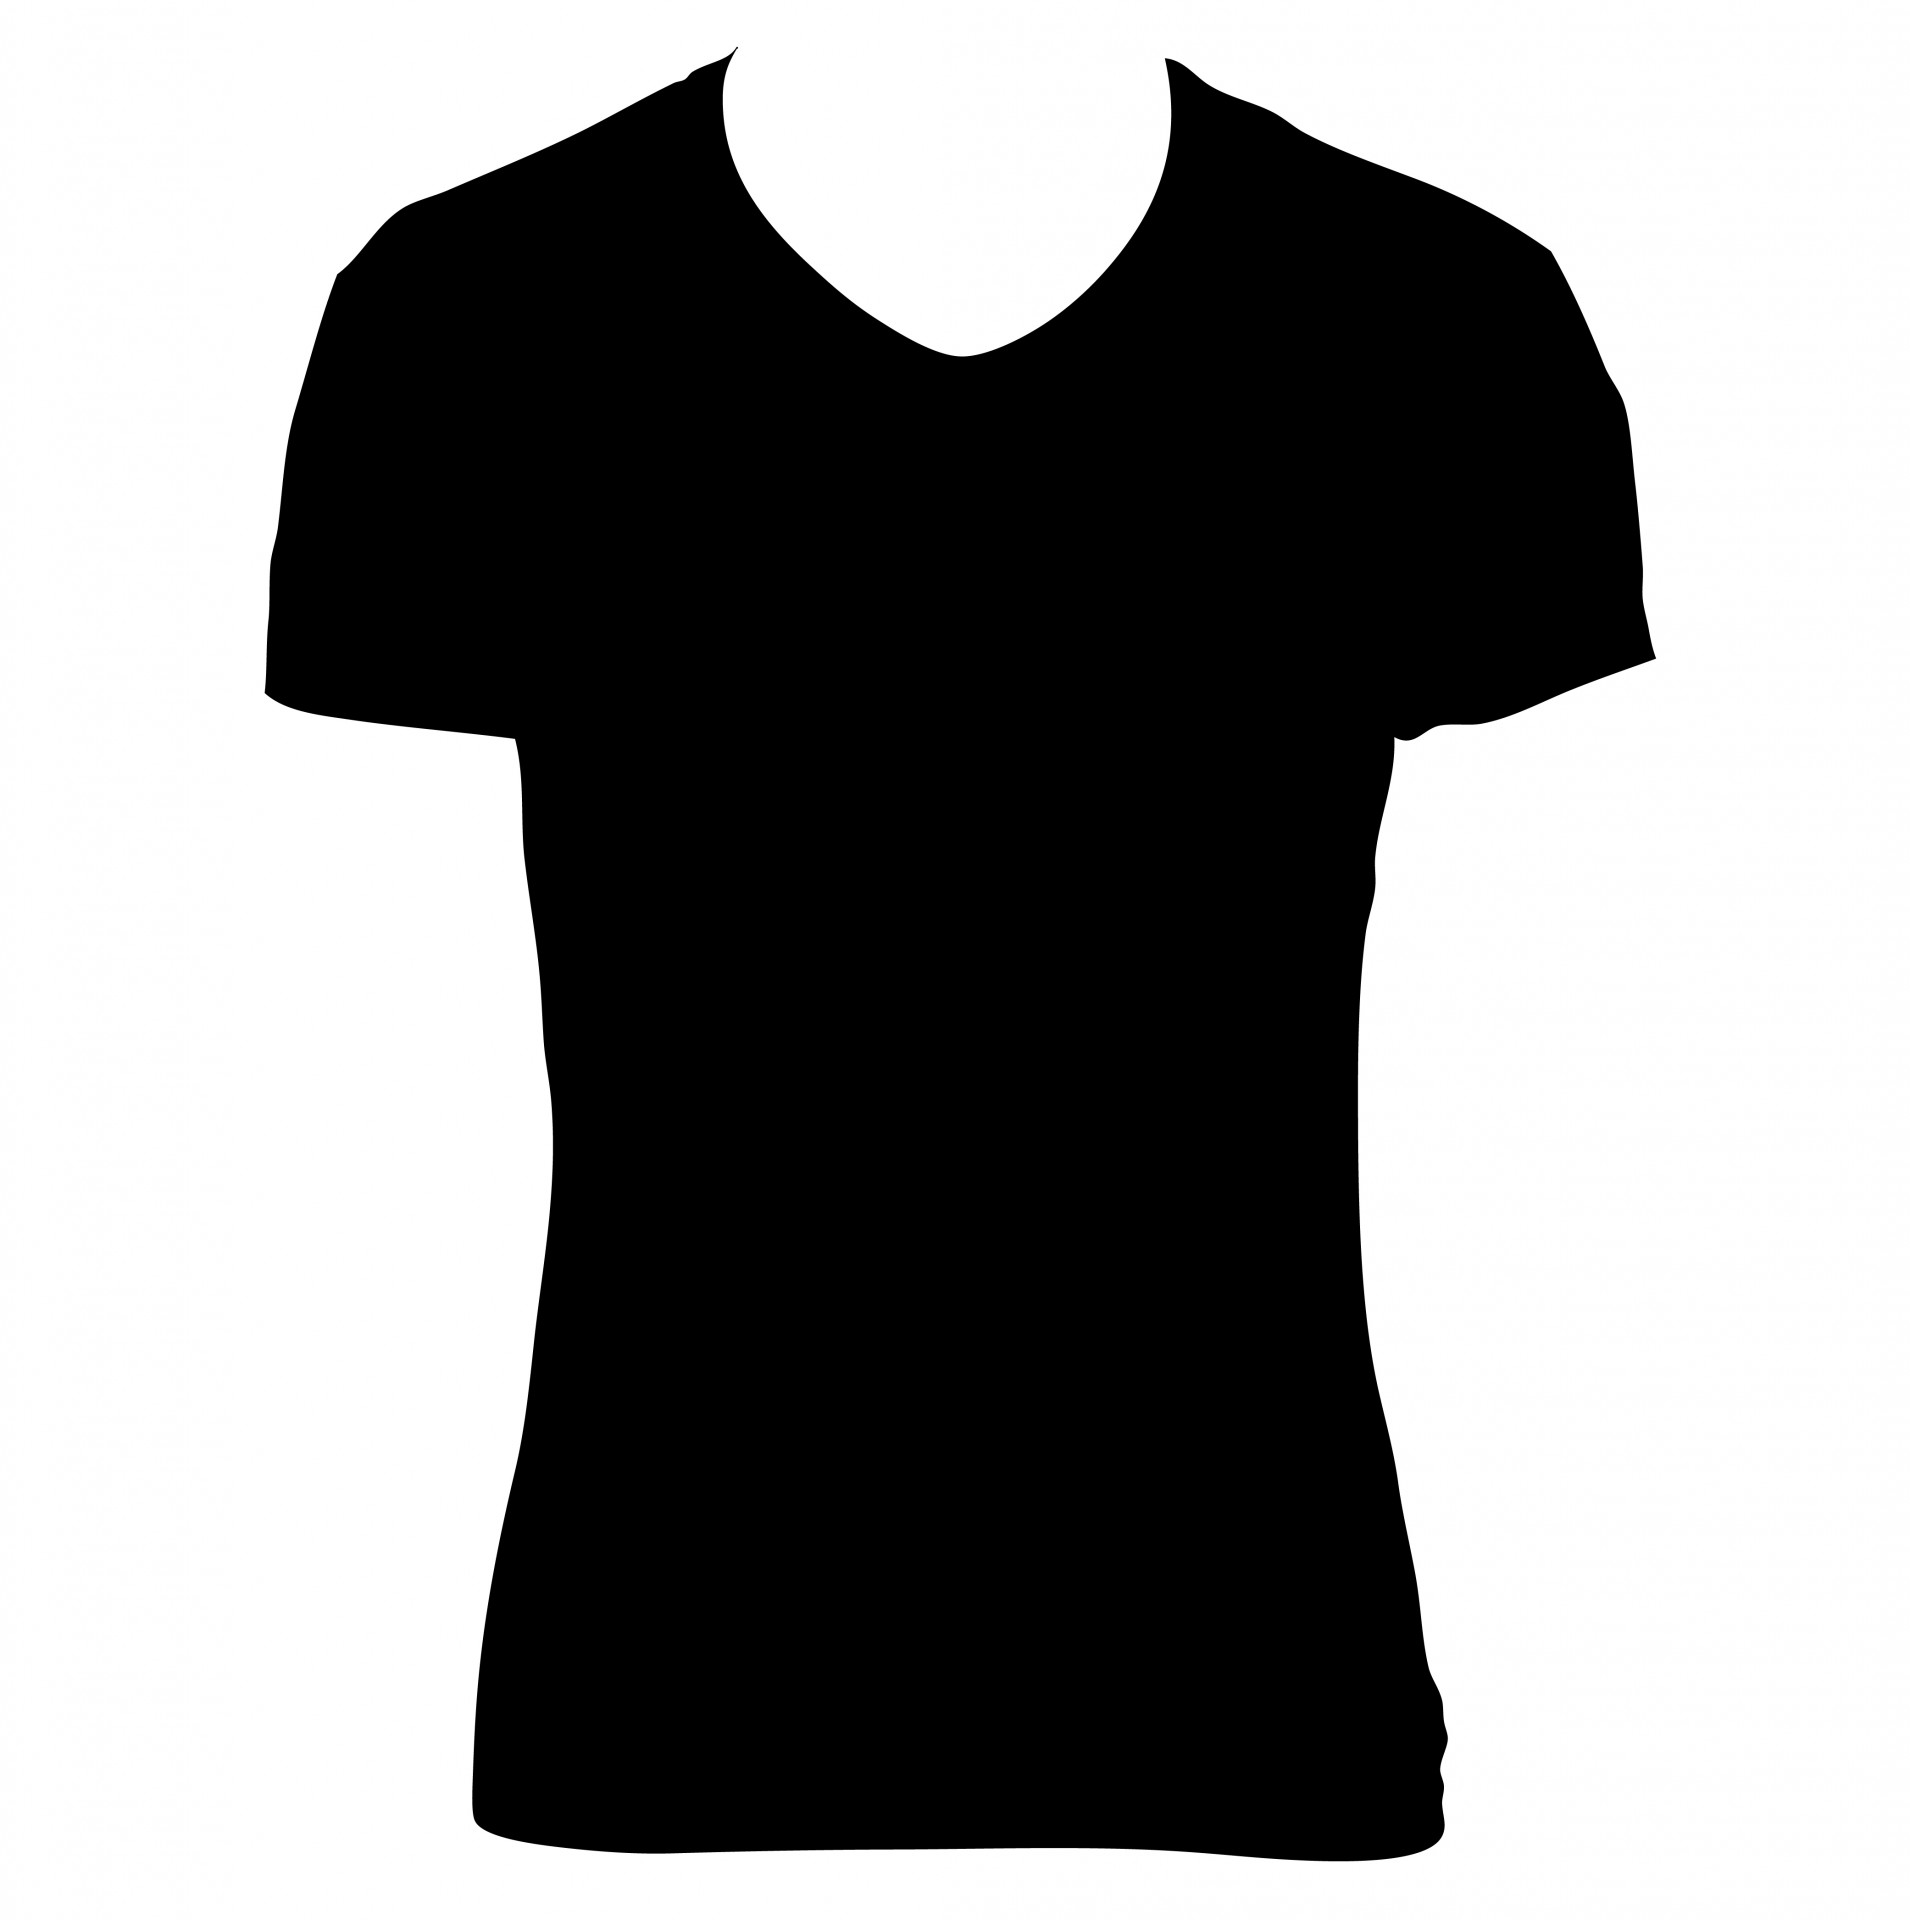 Clipart t graphic free Black T-shirt Clipart Free Stock Photo - Public Domain Pictures graphic free